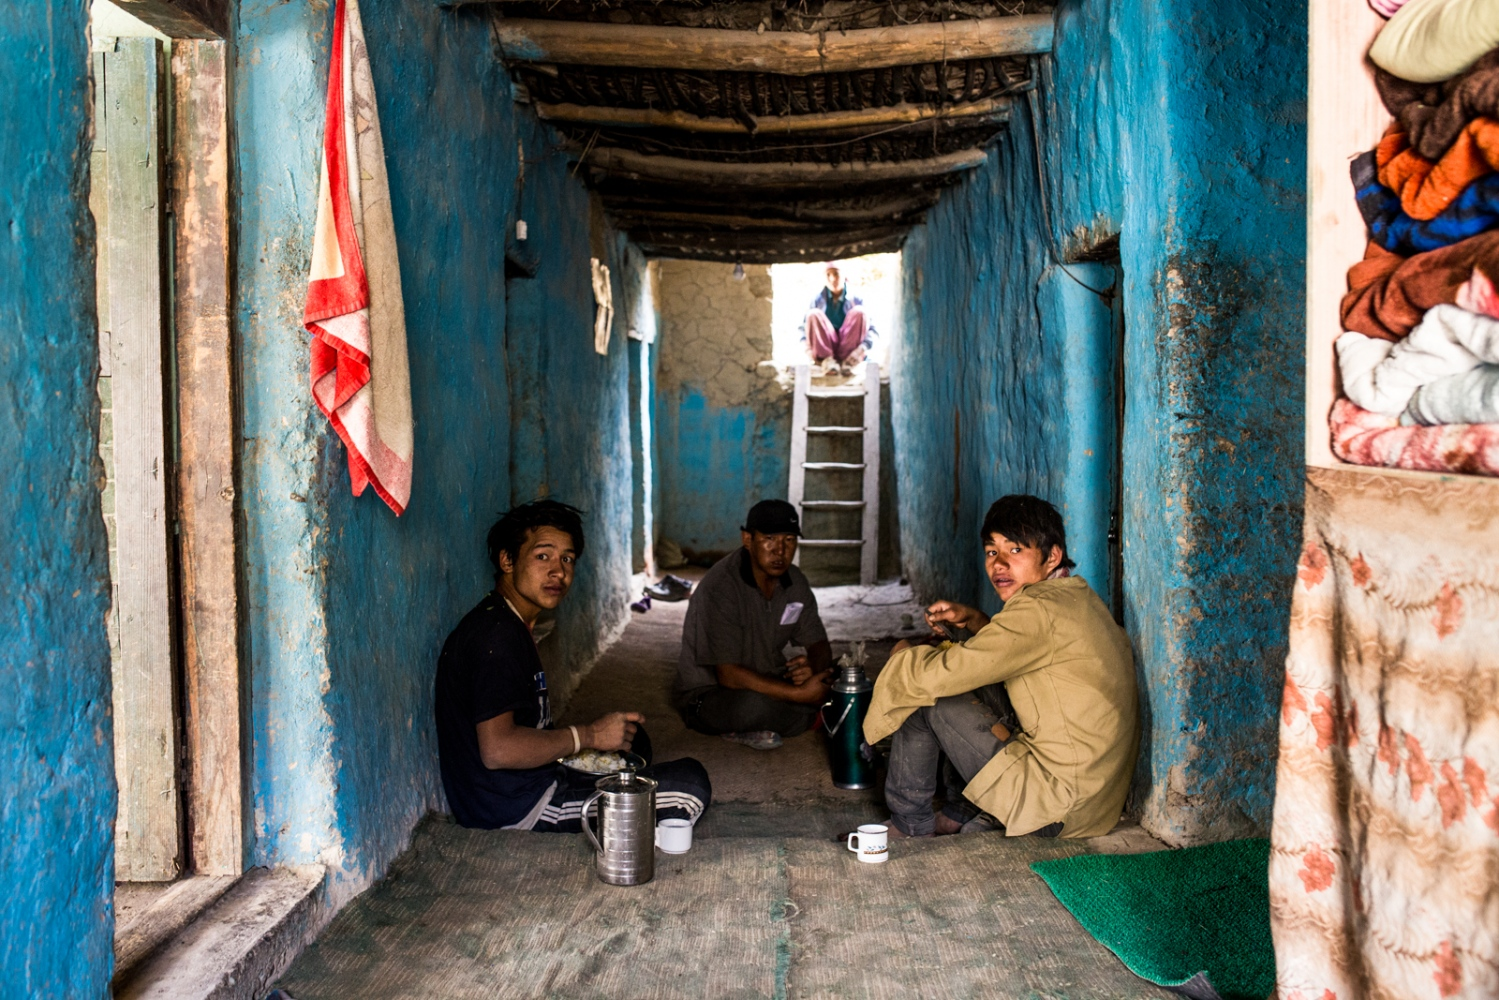 Tashi Stobdan, Tsewang Zangmo, and two Nepali migrant workers rest indoors on a hot day in Kumik.